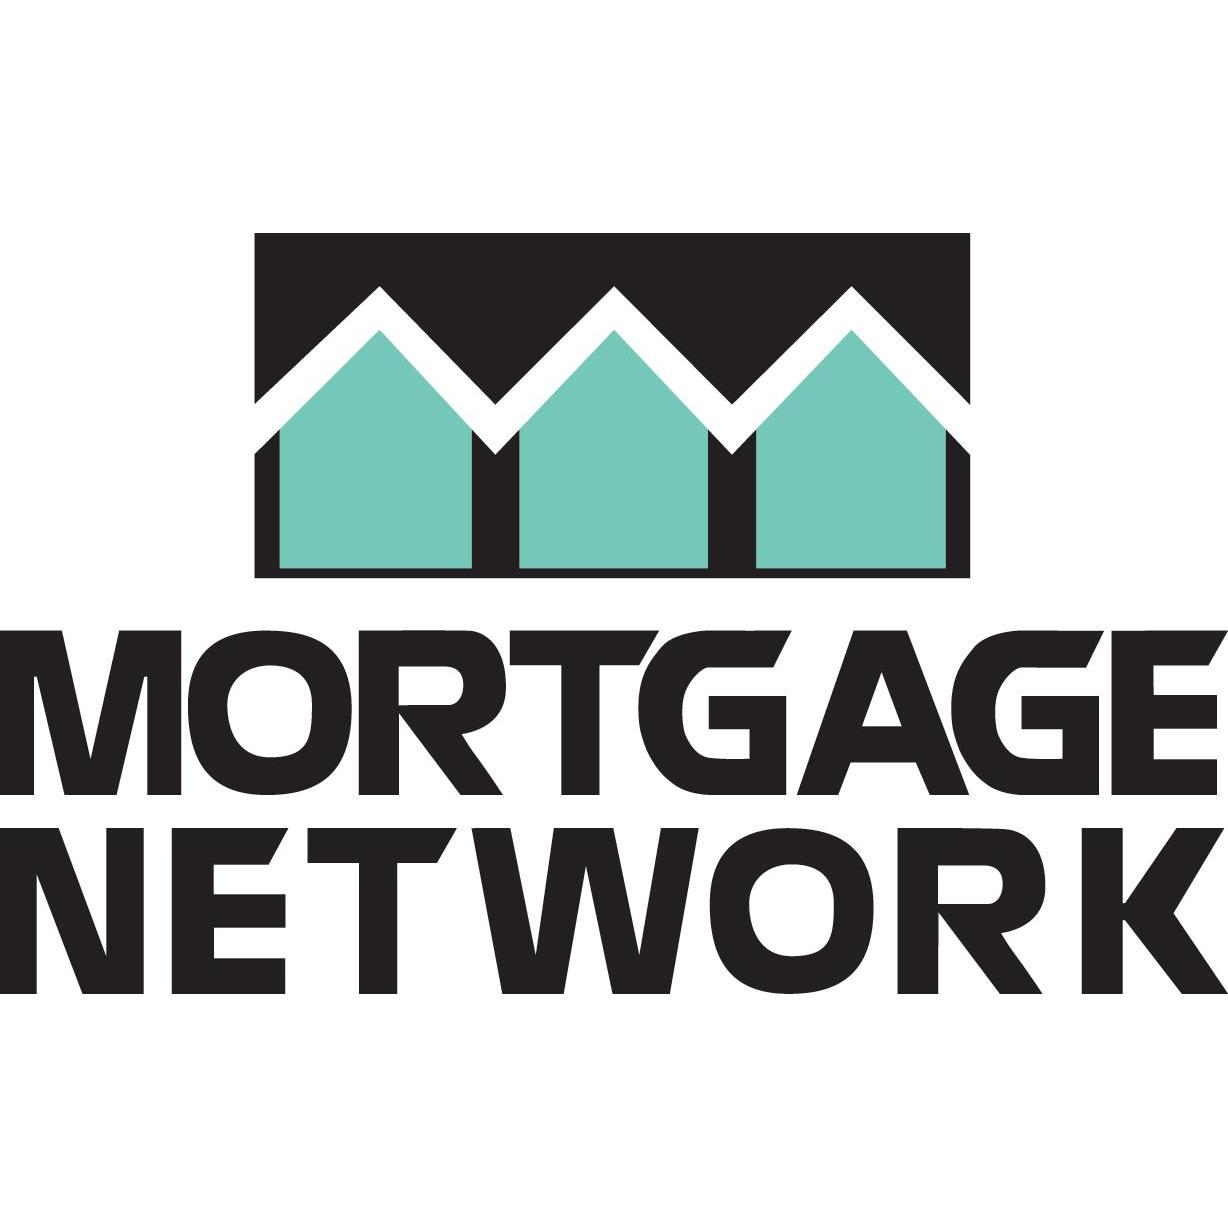 Brian Cavanaugh - Mortgage Network, Inc.